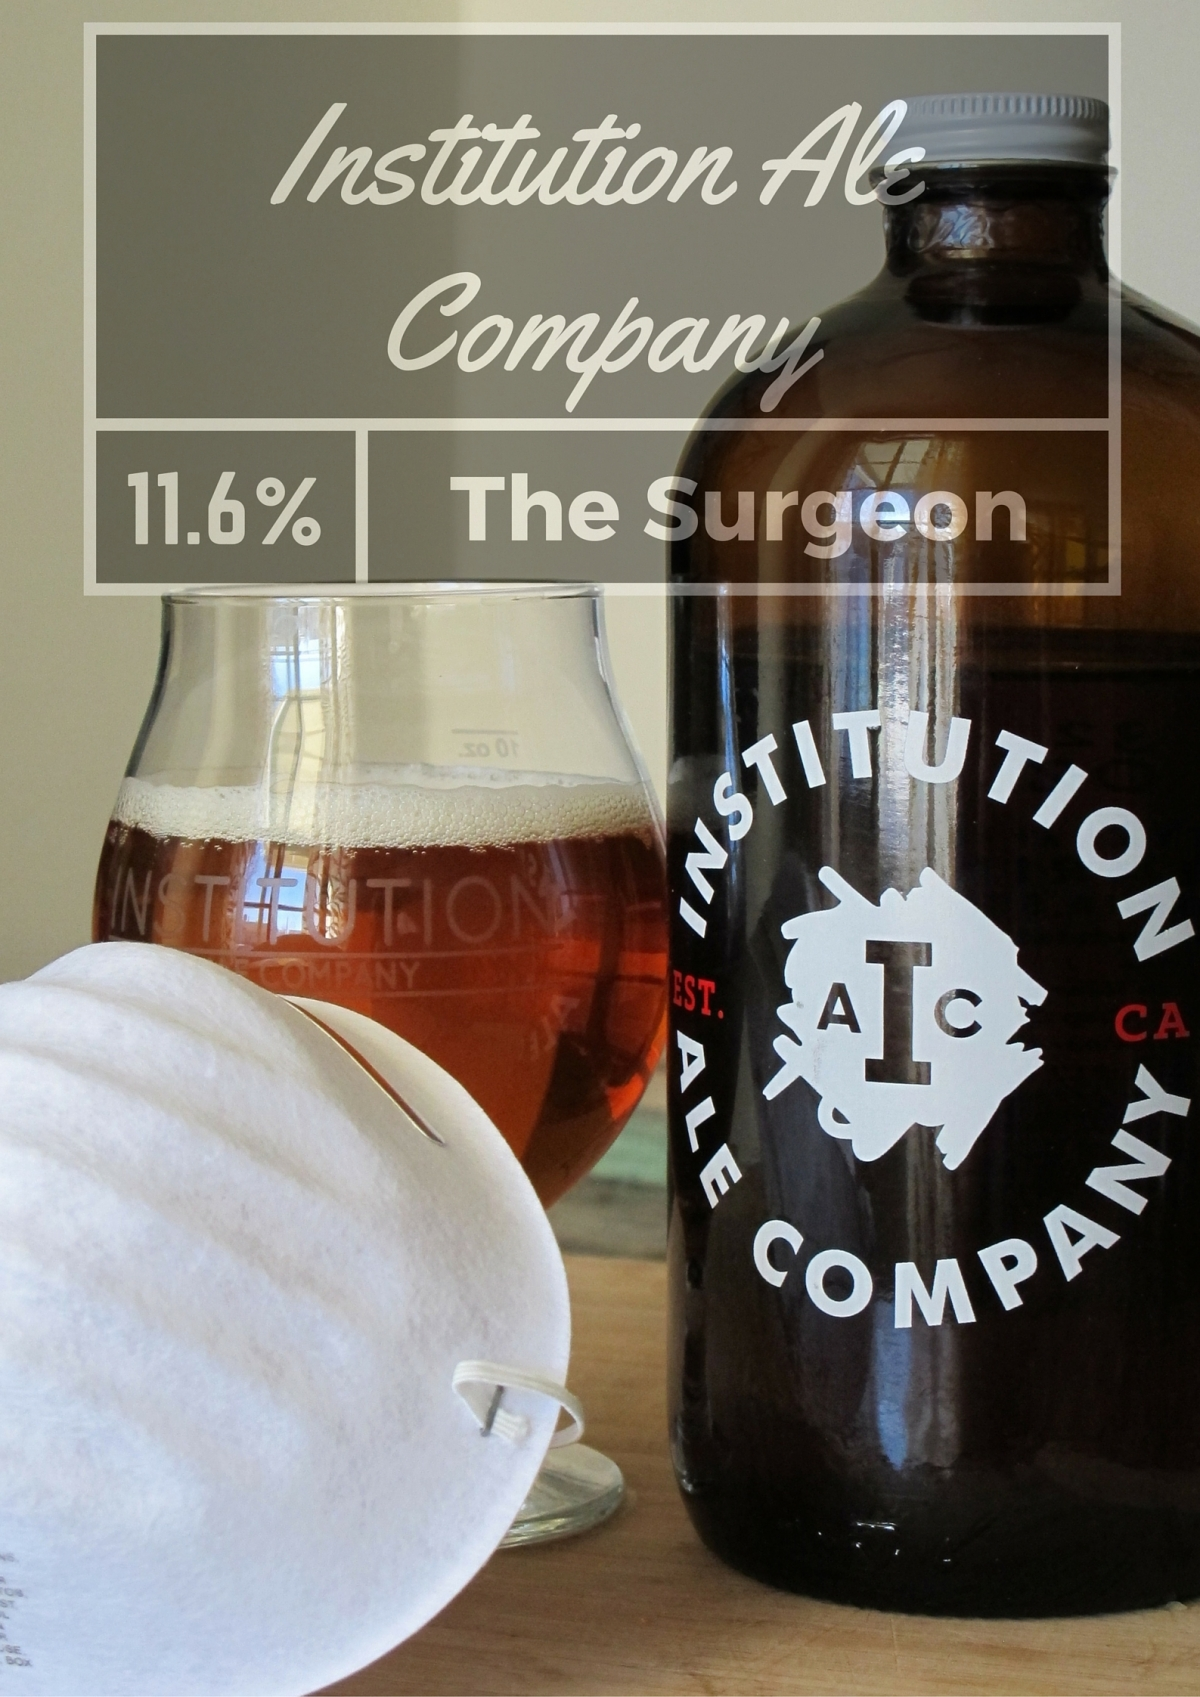 Beer review: The Surgeon IPA (Institution Ale Company)